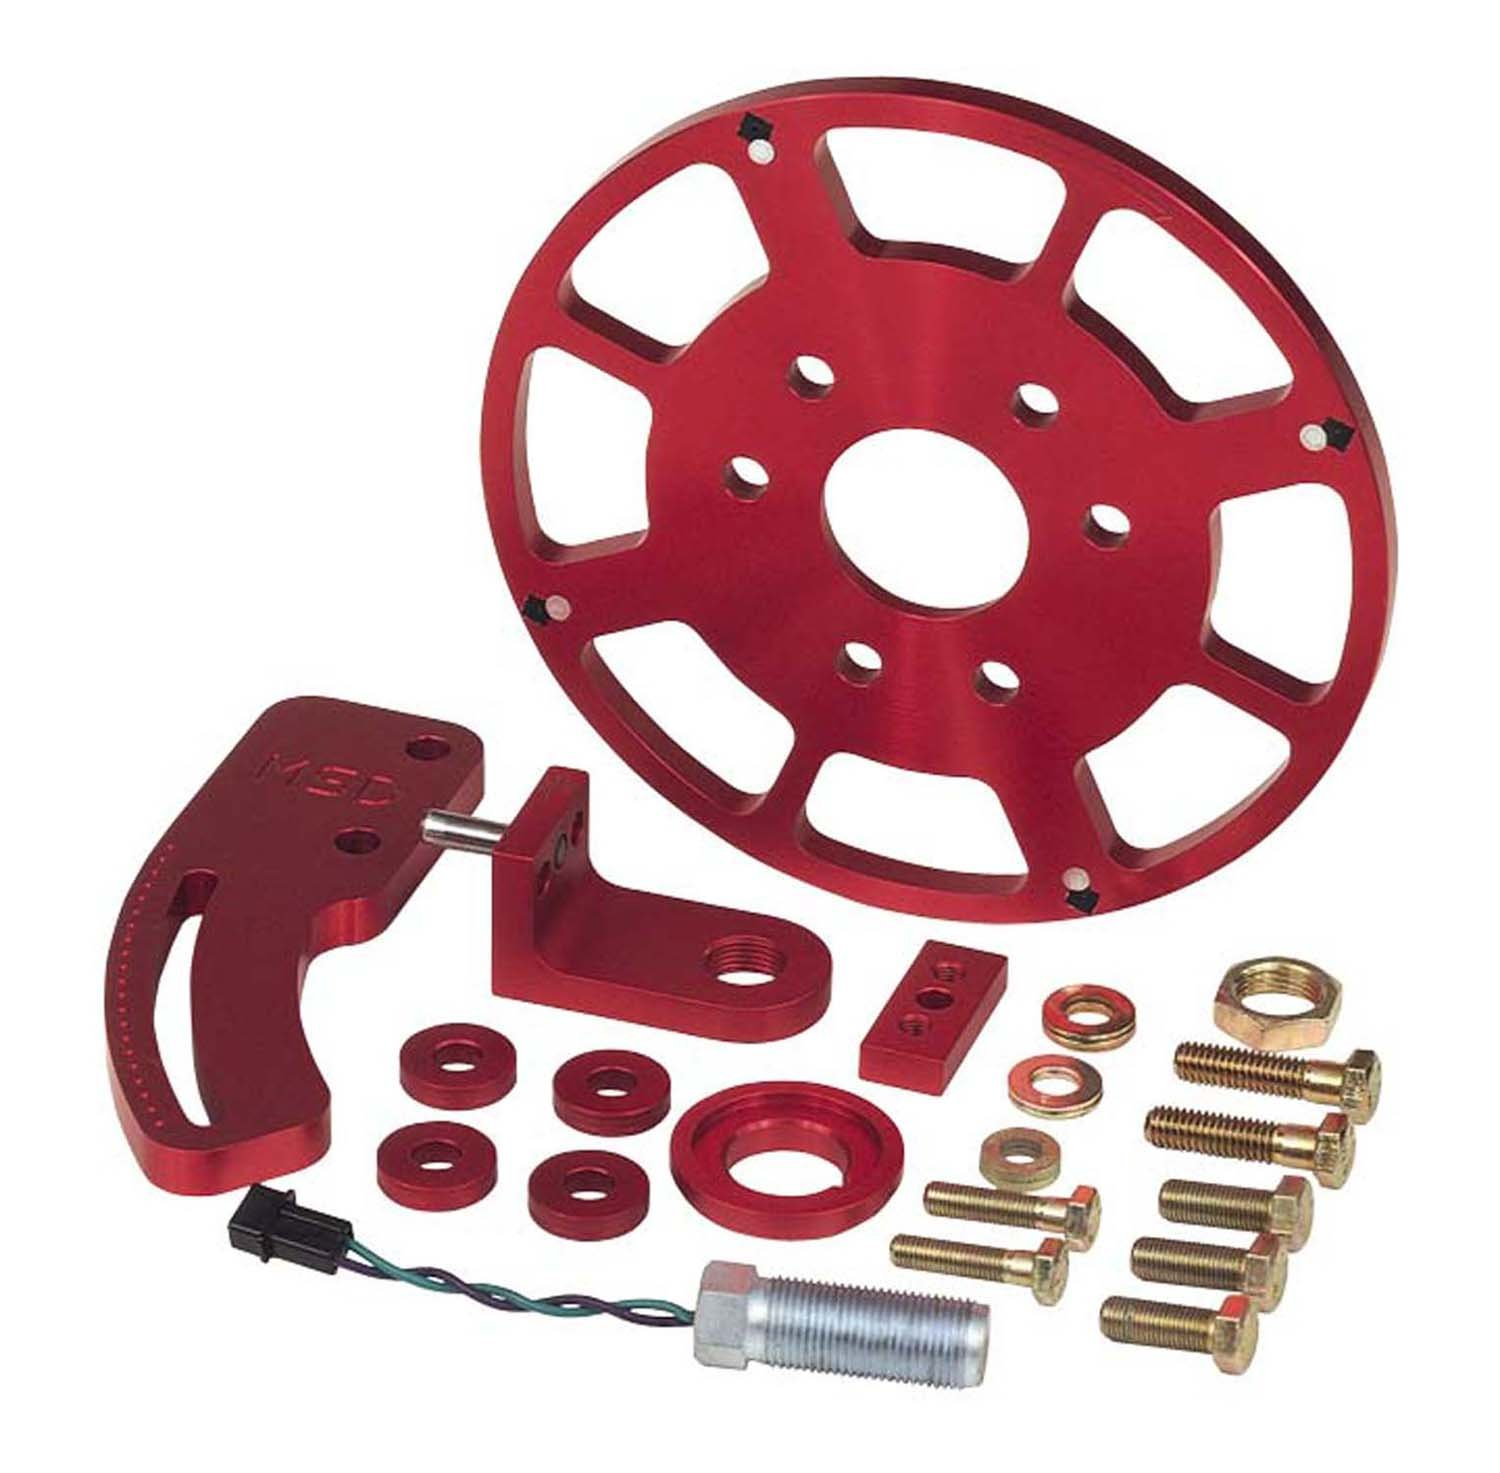 msd 8644 ford big block crank trigger kit msd performance products 8644 ford big block crank trigger kit image